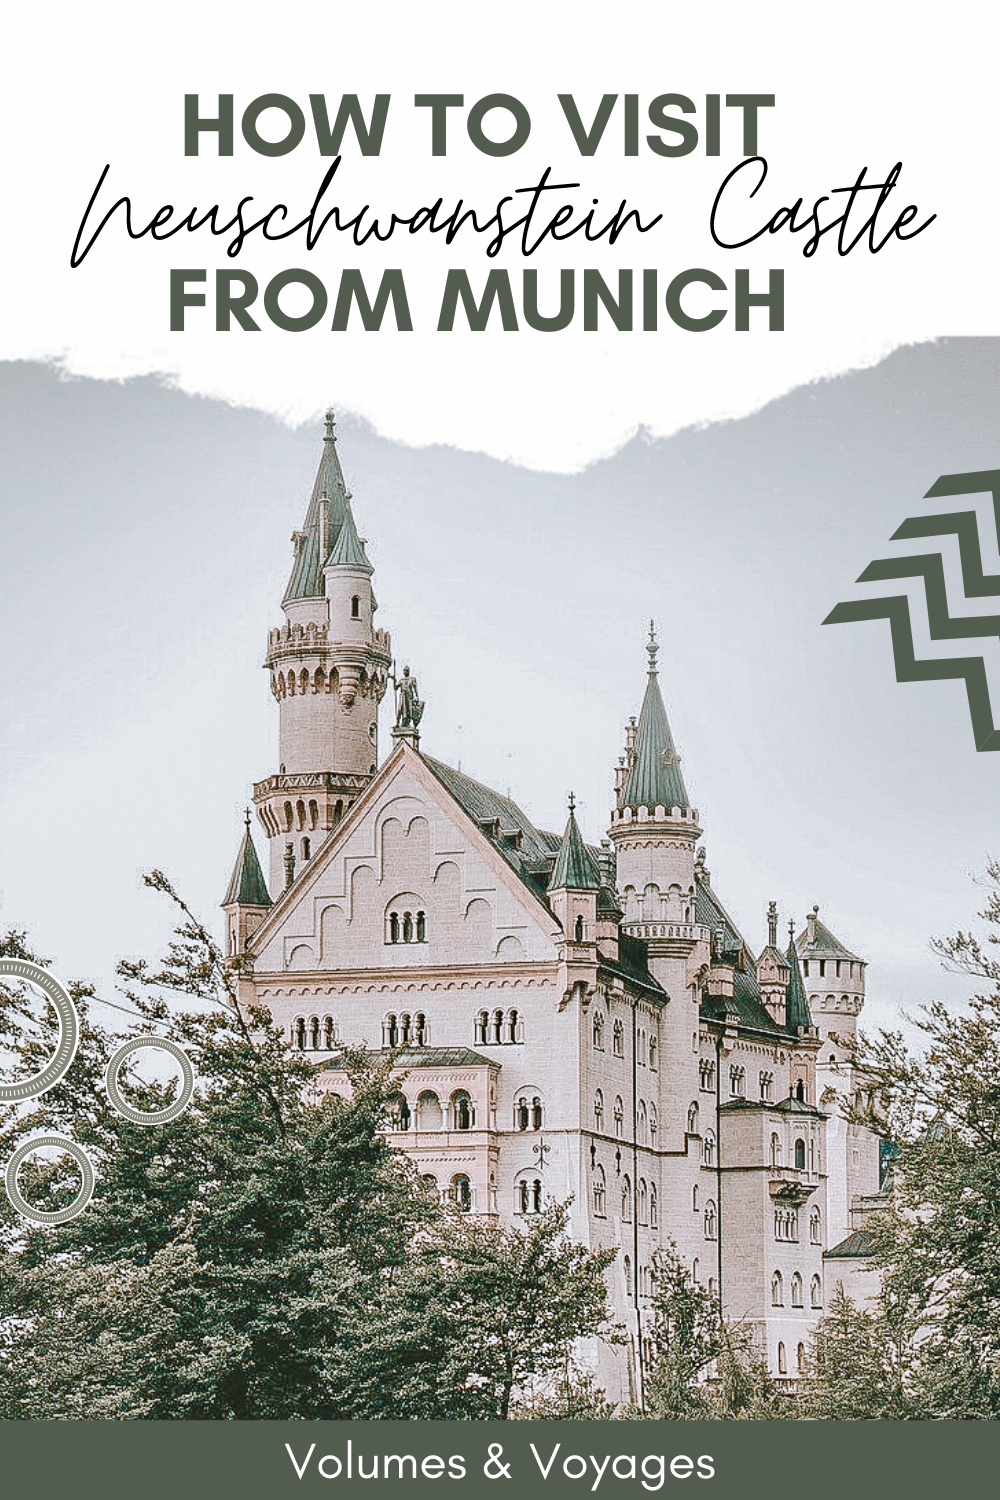 88596ef2e0f965fde11629f585e25b68 - How Do You Get To Neuschwanstein Castle From Munich